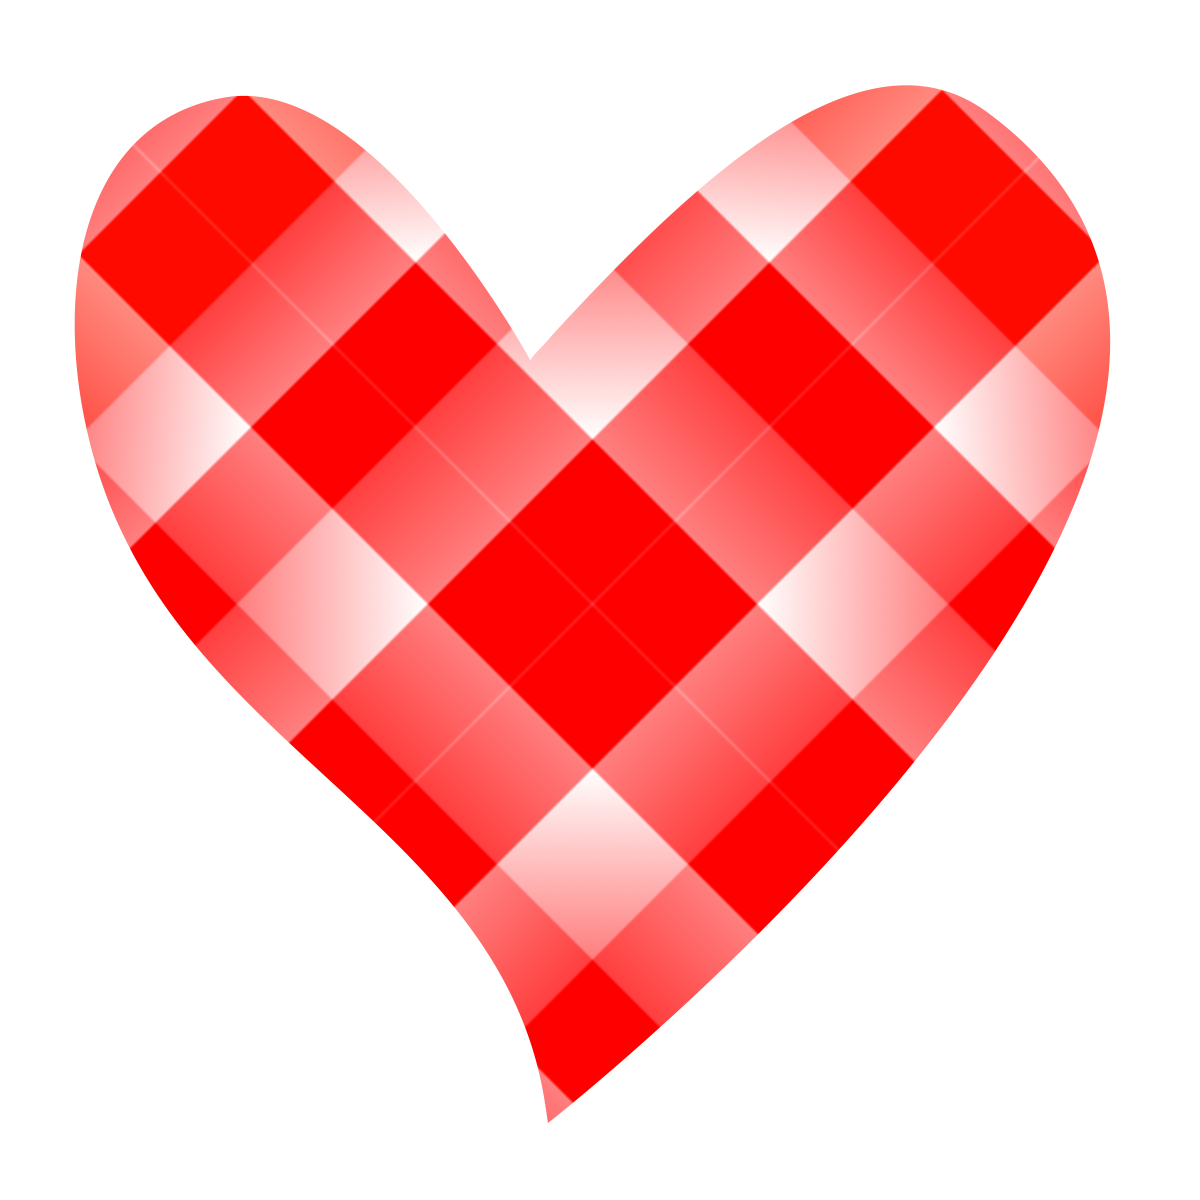 Heart-shaped clipart #8, Download drawings